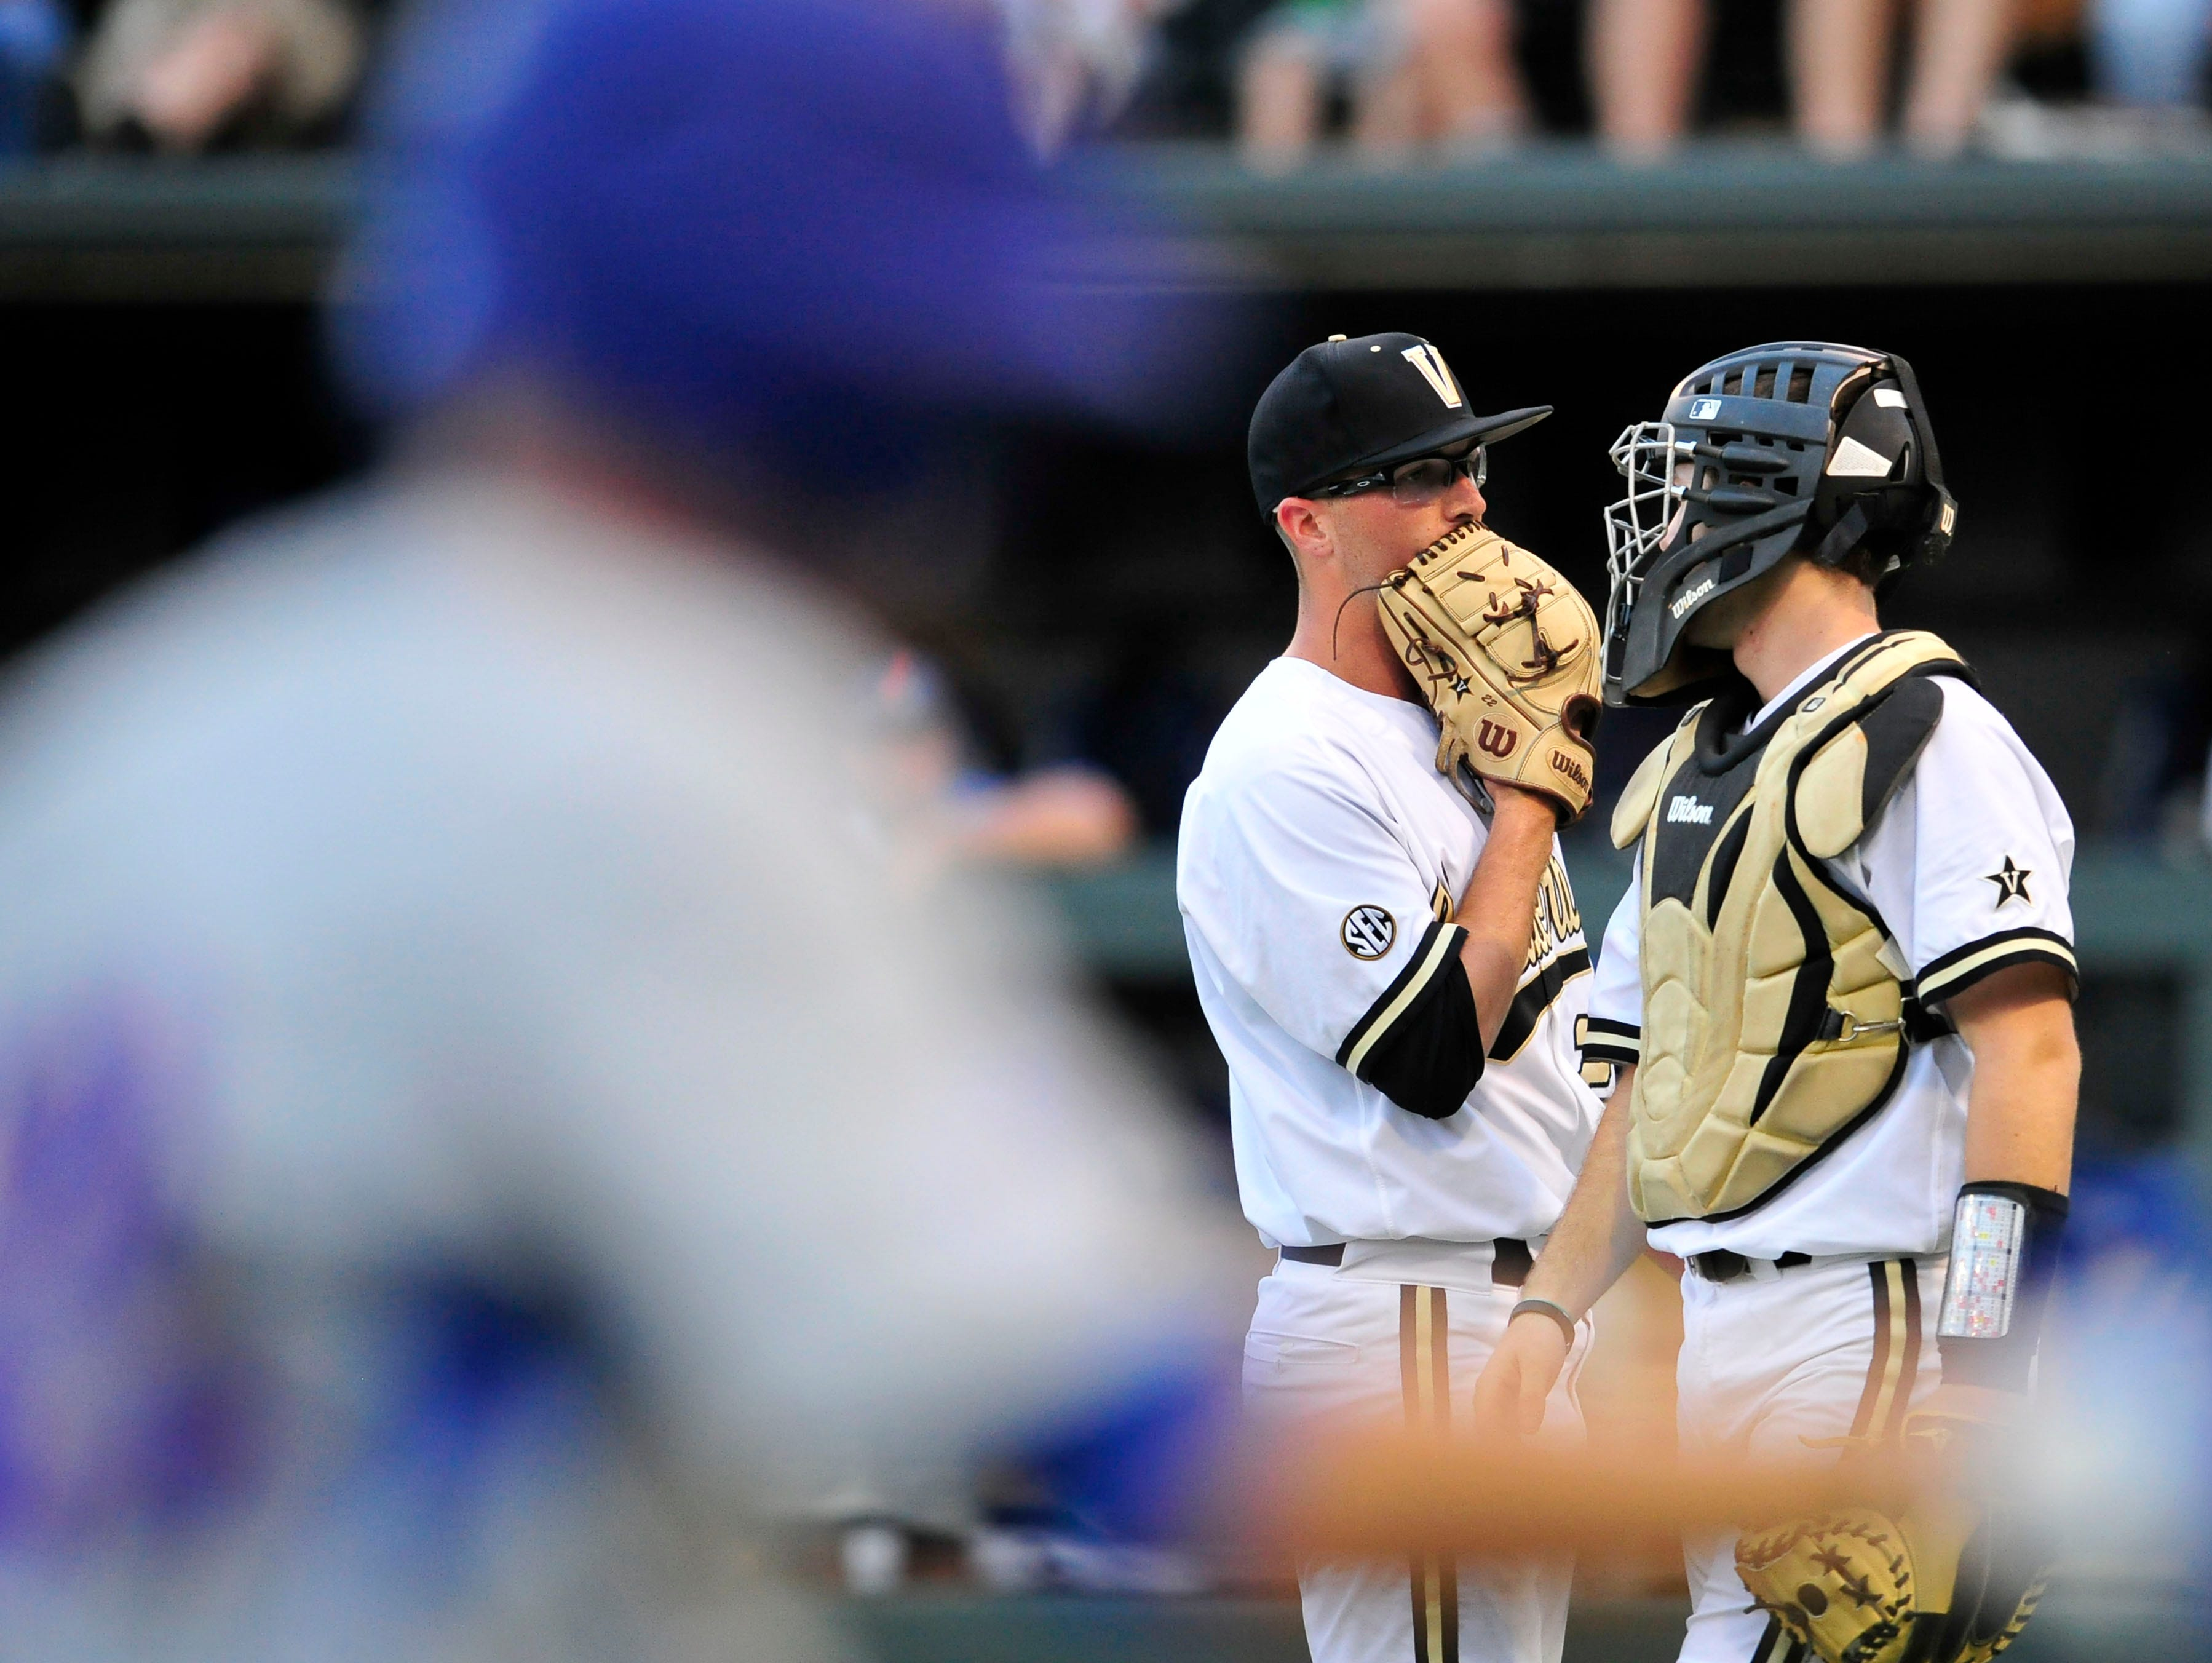 Vanderbilt starter Philip Pfeifer, center, talks with catcher Jason Delay as Florida's Richie Martin circles the bases after his two-run home run in the second inning Friday.